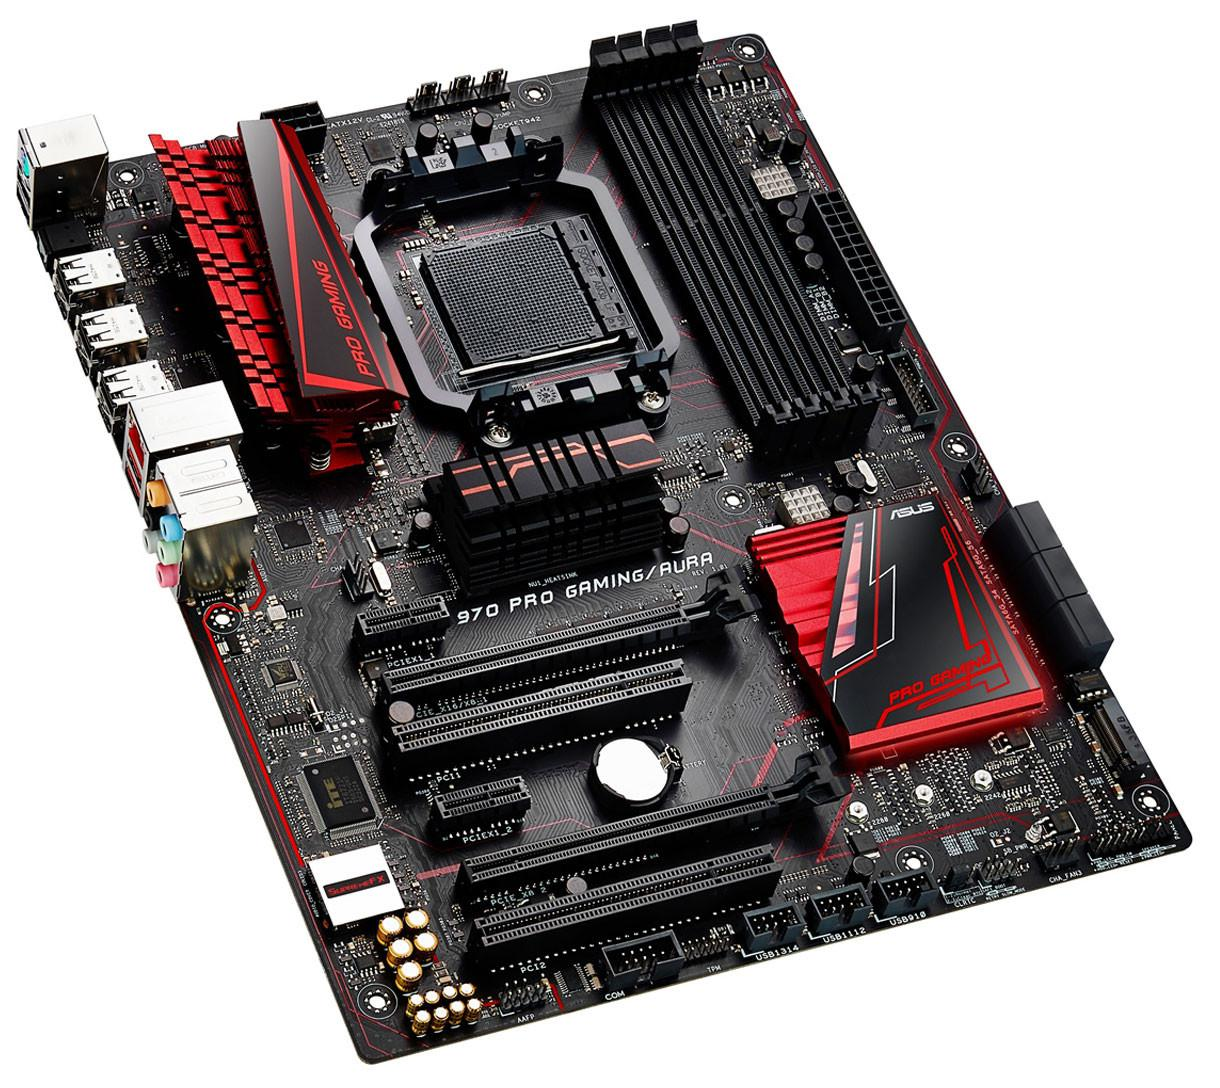 ASUS 970 ProGaming Aura am3